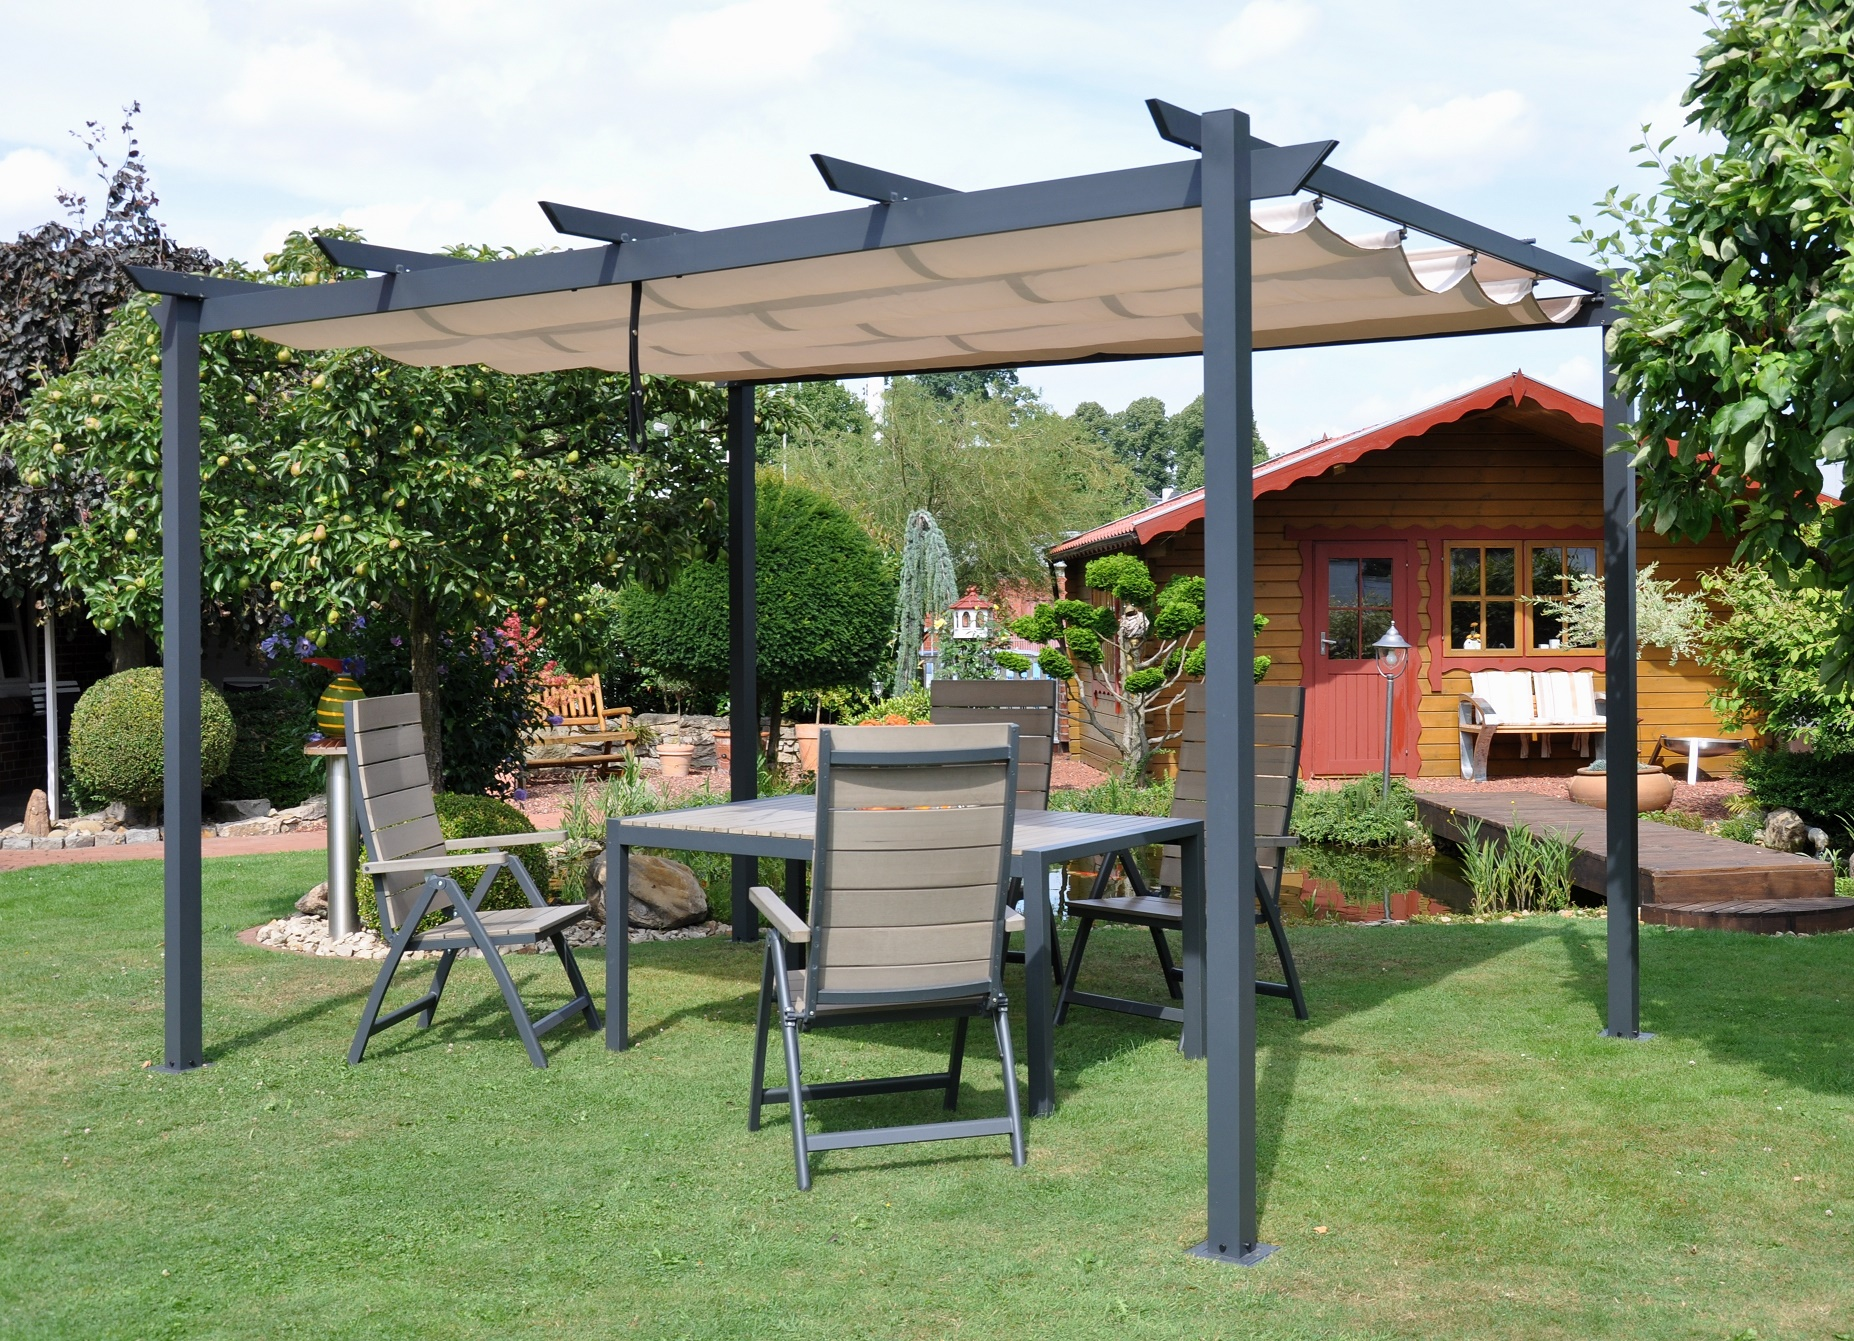 leco pergola 3x4m garten terrasse berdachung pavillon windschutz sonnenschutz ebay. Black Bedroom Furniture Sets. Home Design Ideas